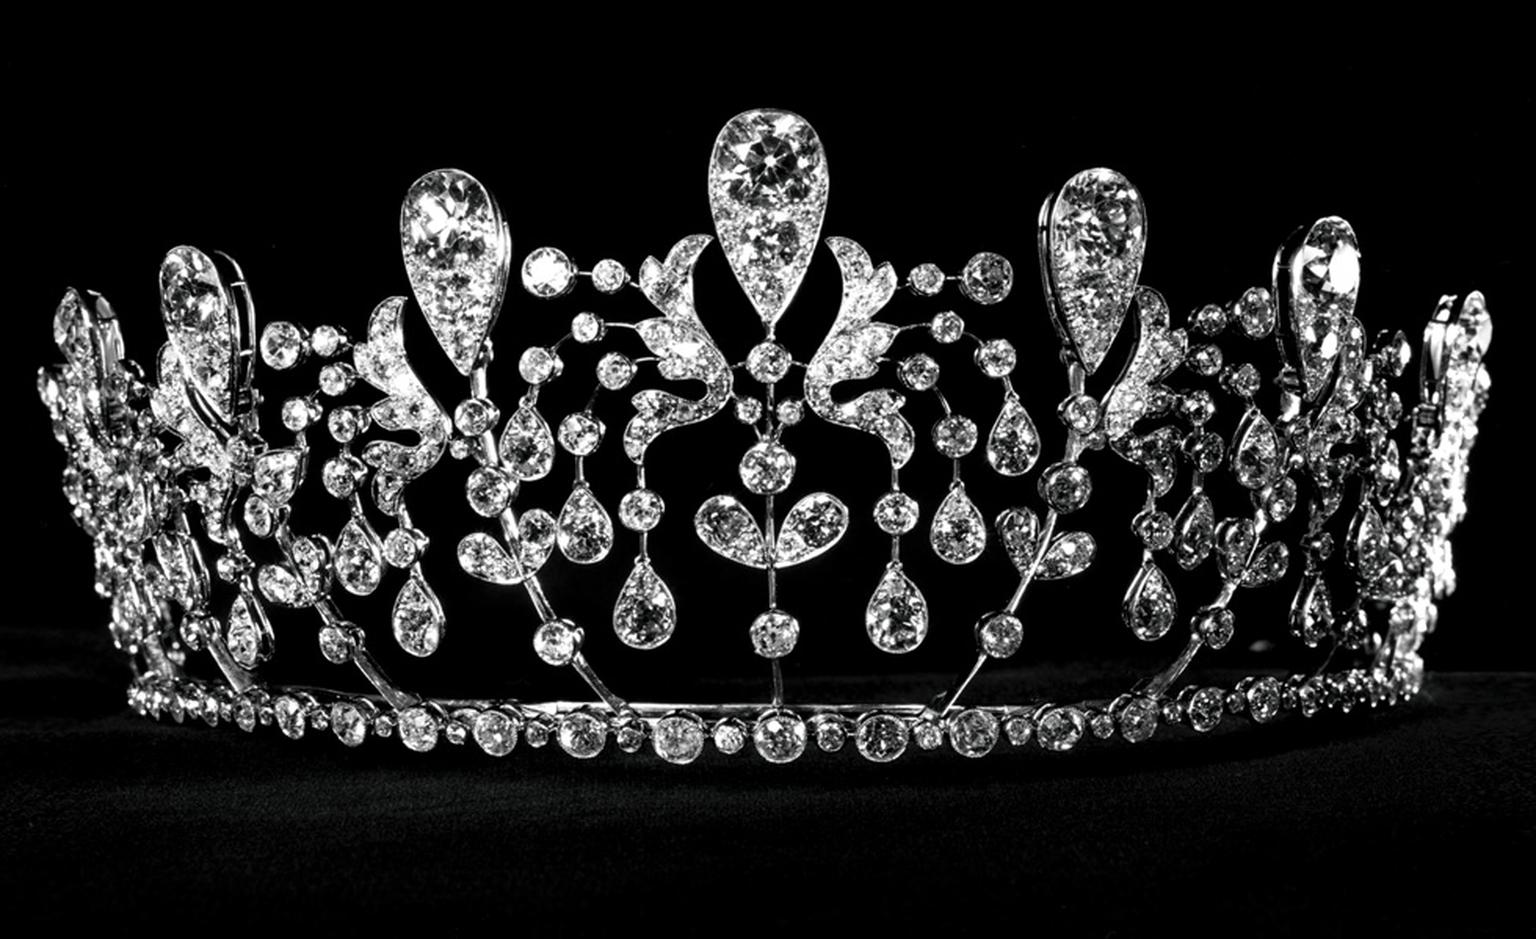 The Bourbon Parma Tiara image from Chaumet